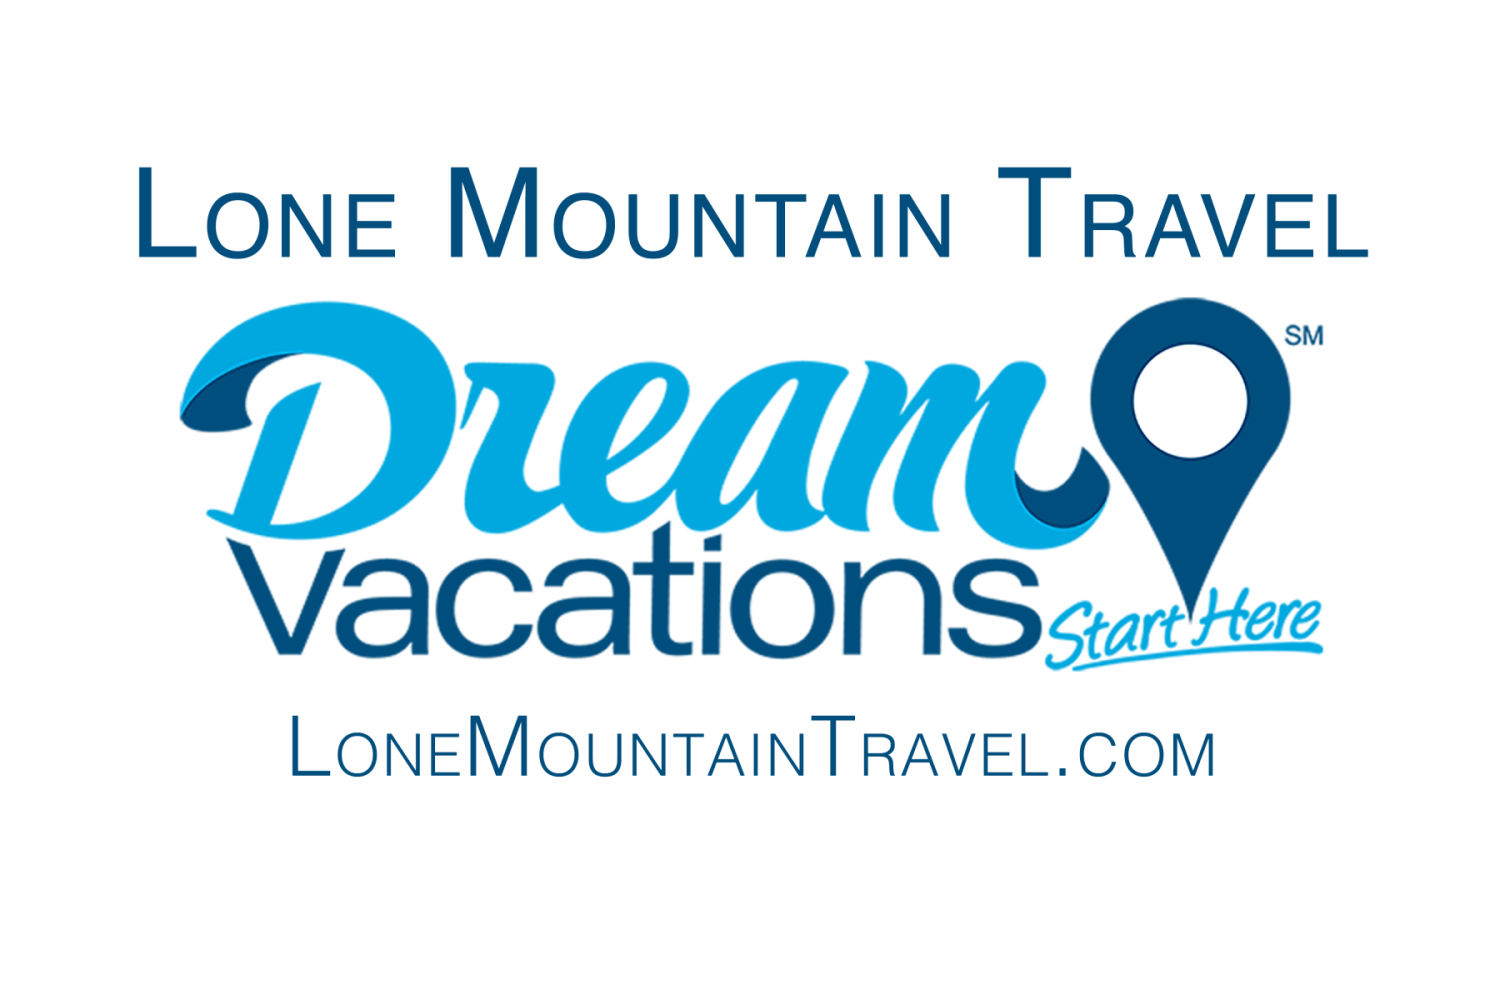 Lone Mountain Travel